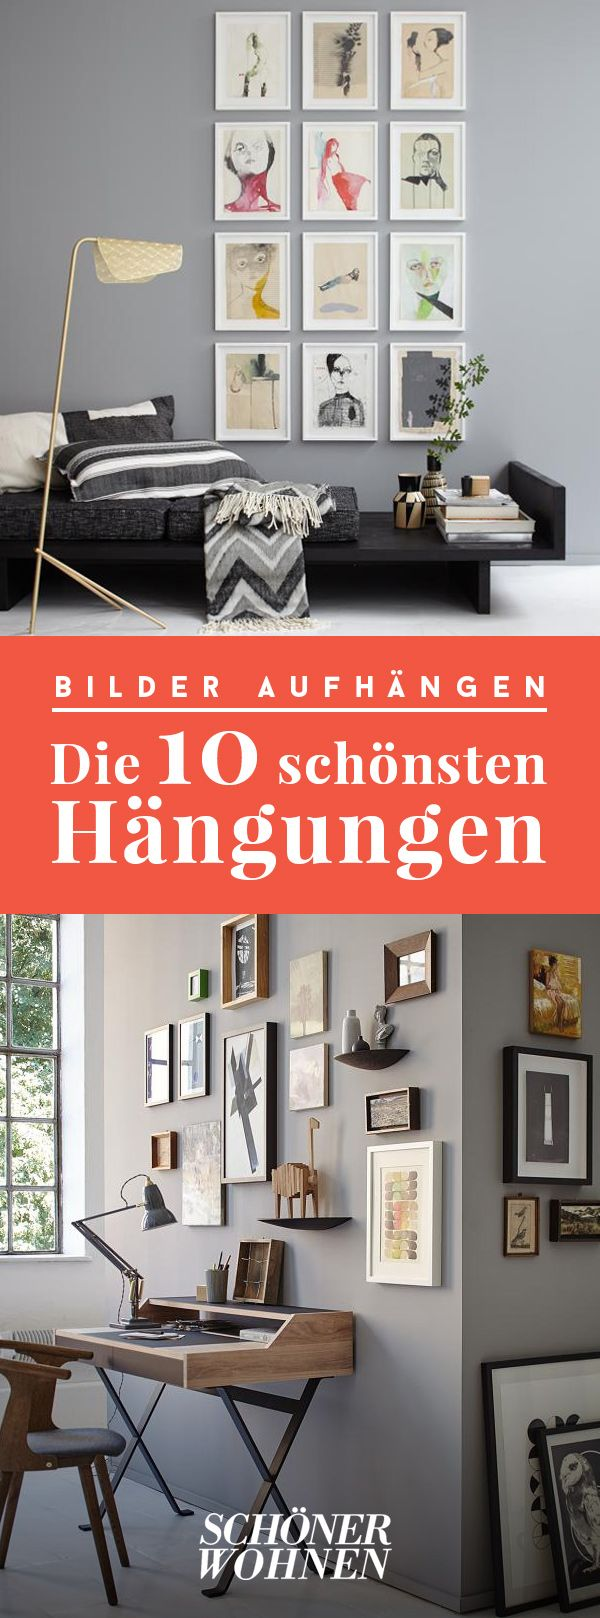 die besten 17 ideen zu bilder aufh ngen auf pinterest. Black Bedroom Furniture Sets. Home Design Ideas